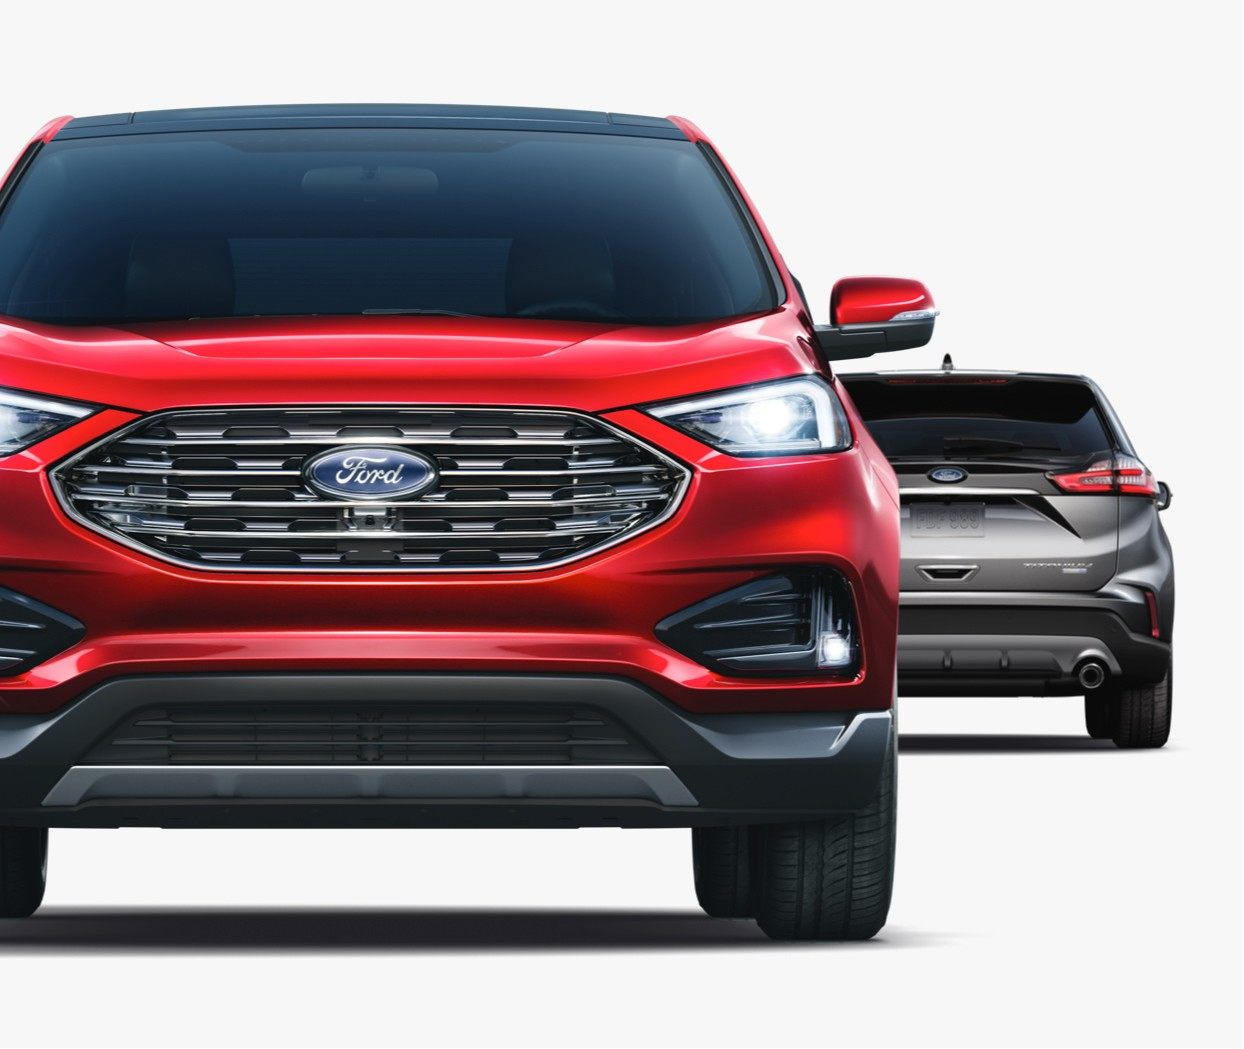 2019 Ford Edge St First Drive Review Performance Meets: 2019 Ford Edge Salem NH